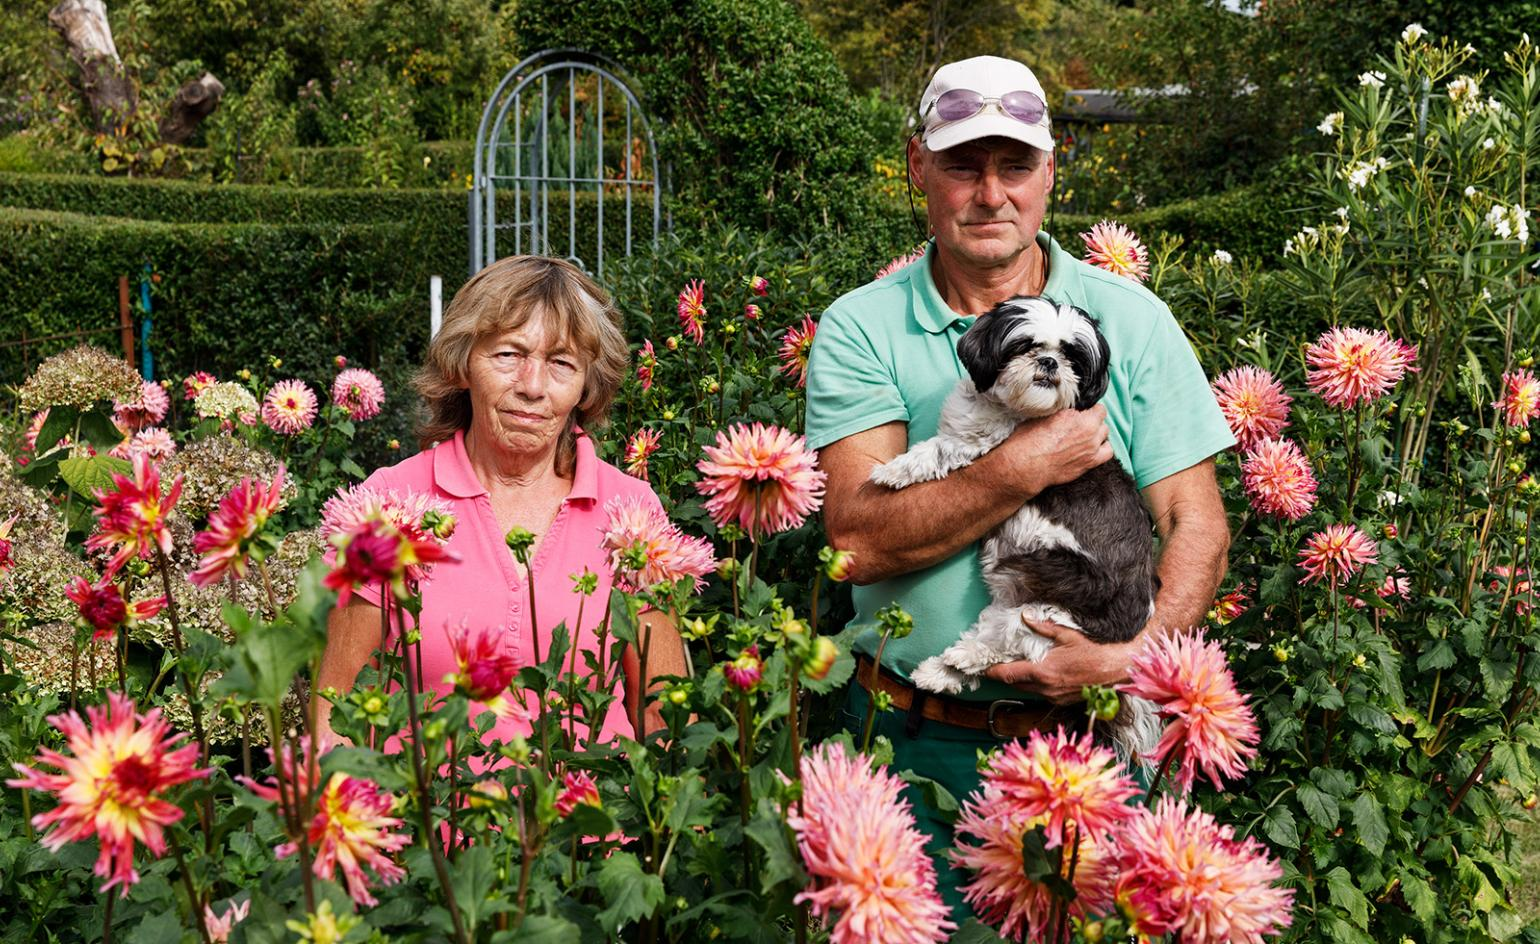 Martin Parr on chronicling modern passions and Düsseldorf's hobby-gardeners